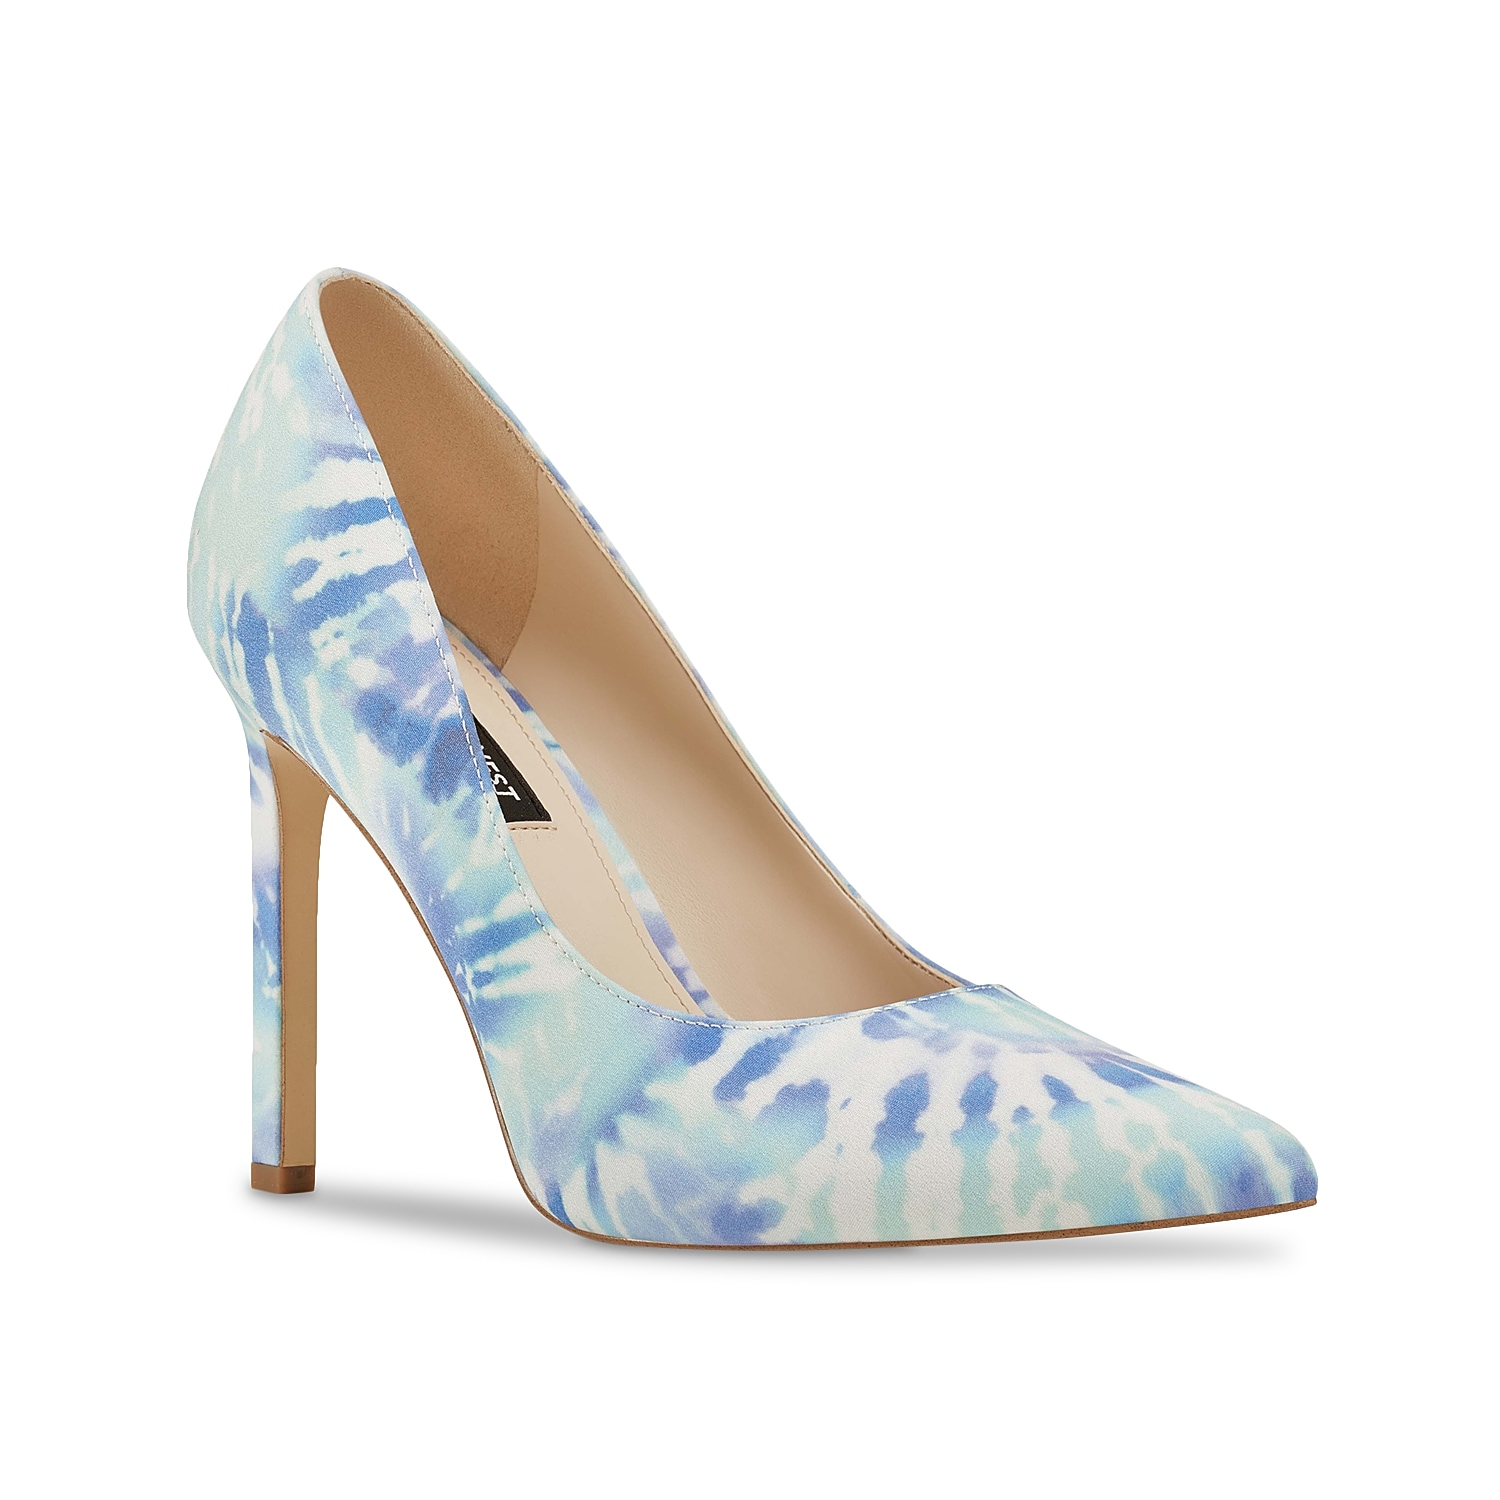 Amp up any outfit with the Tatiana 2 pump from Nine West. With a towering stiletto and tie dye print, this pointed toe pair will complement anything from short dresses or distressed jeans.